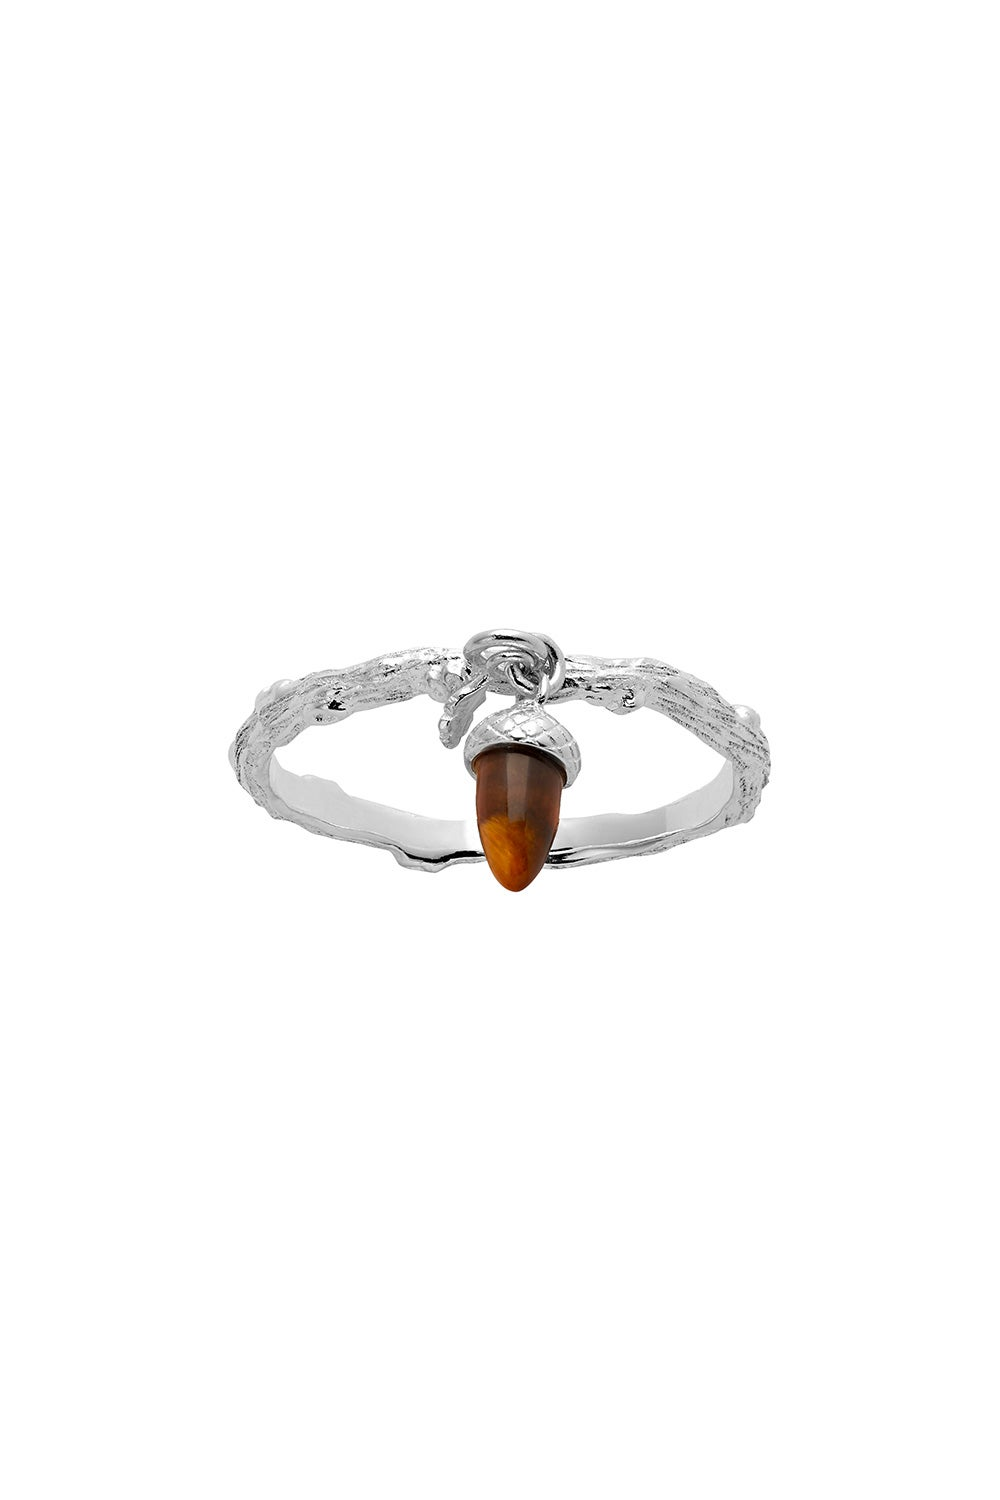 Micro Acorn and Leaf Charm Ring Silver